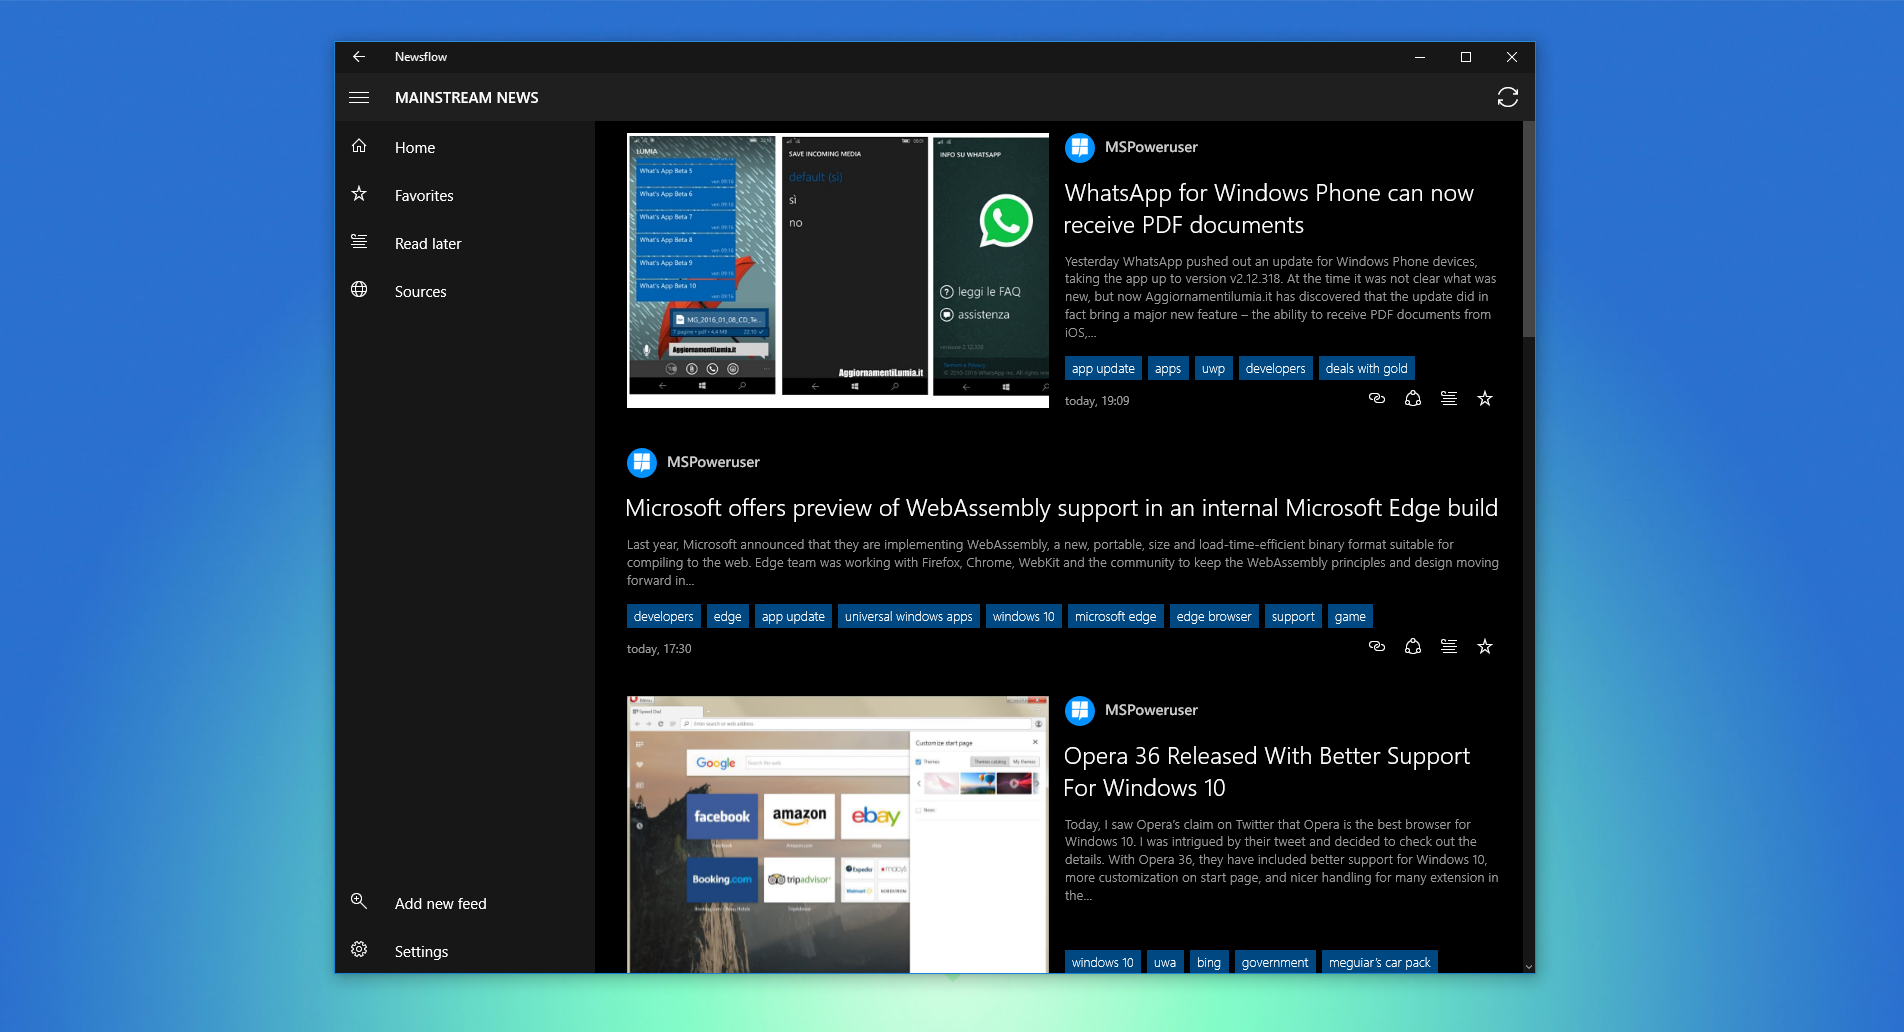 Newsflow is a beautiful RSS reader app for Windows 10.